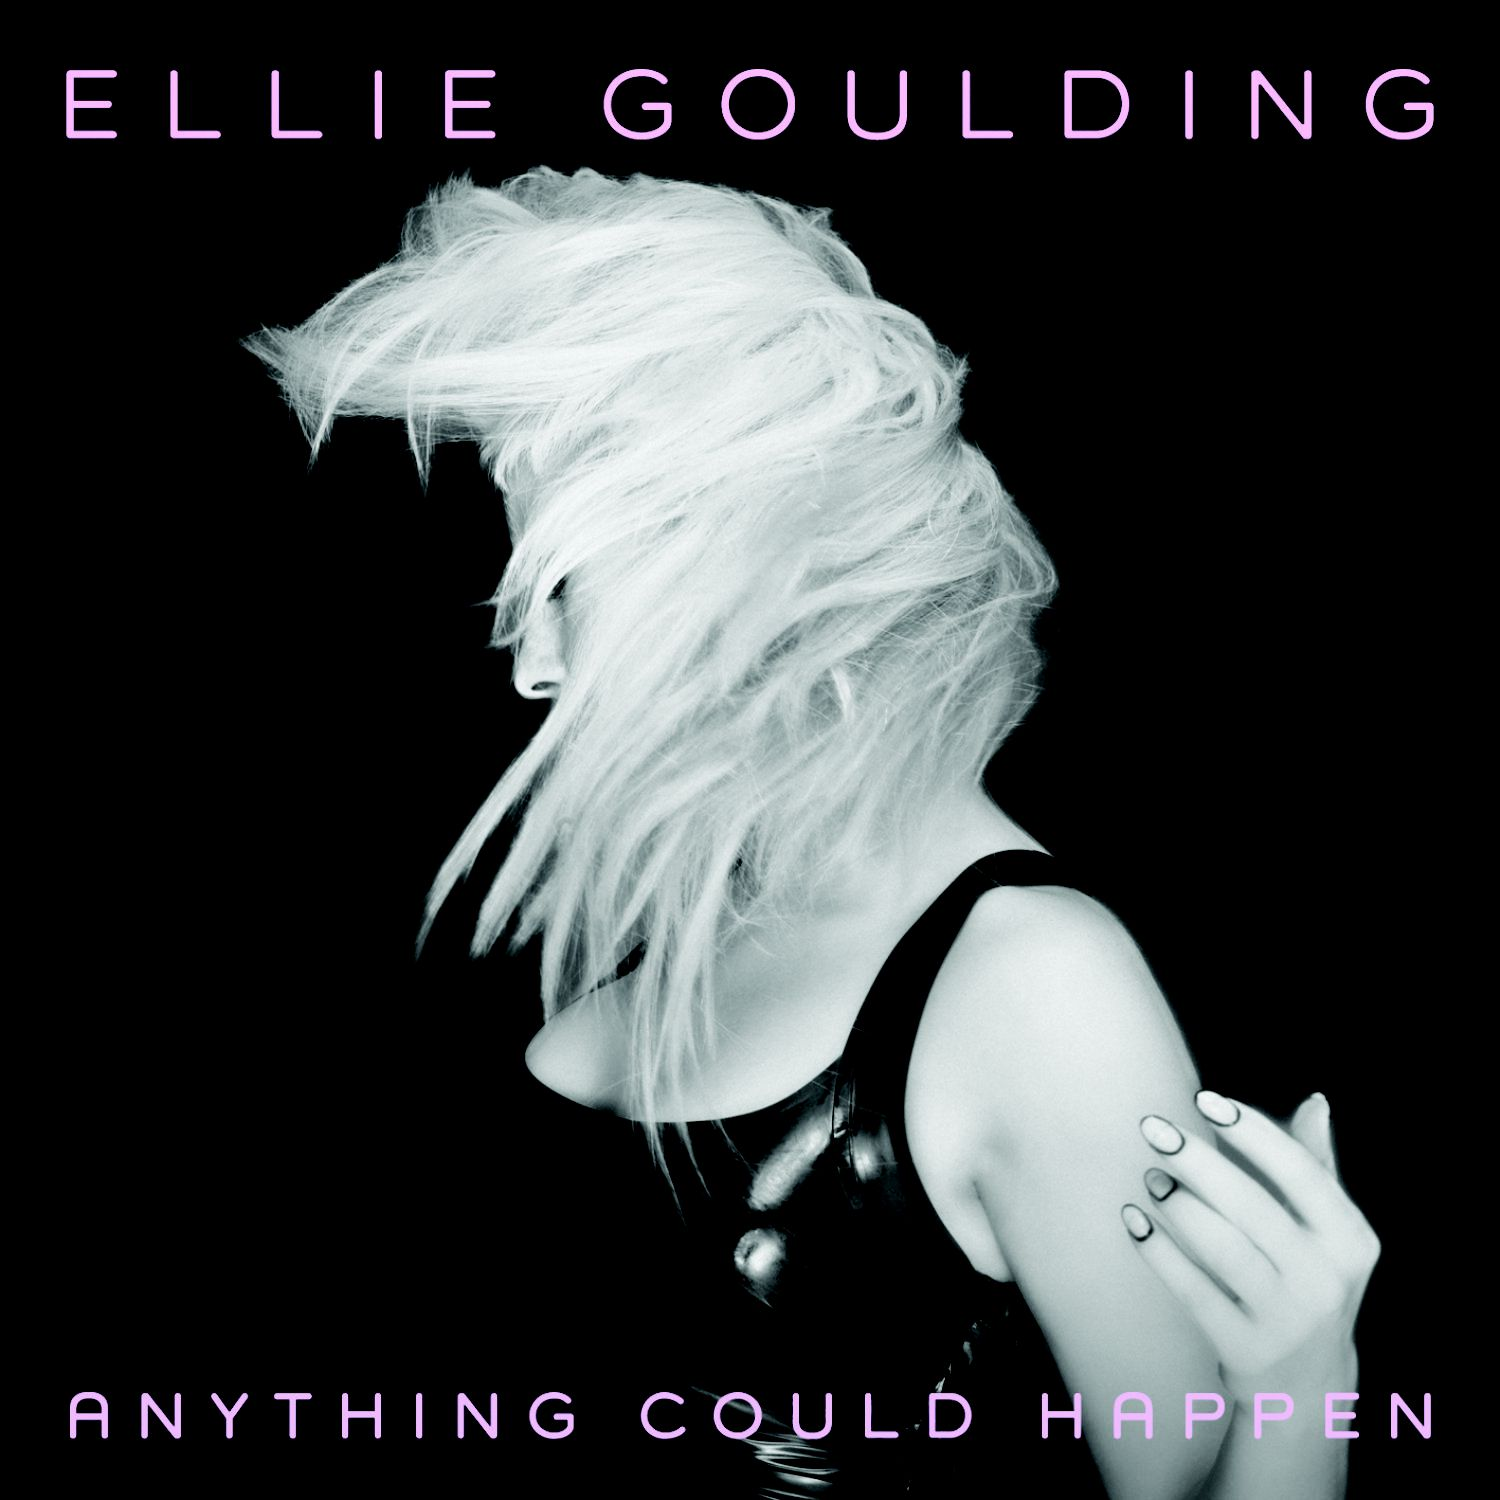 Ellie goulding burn mp3 download